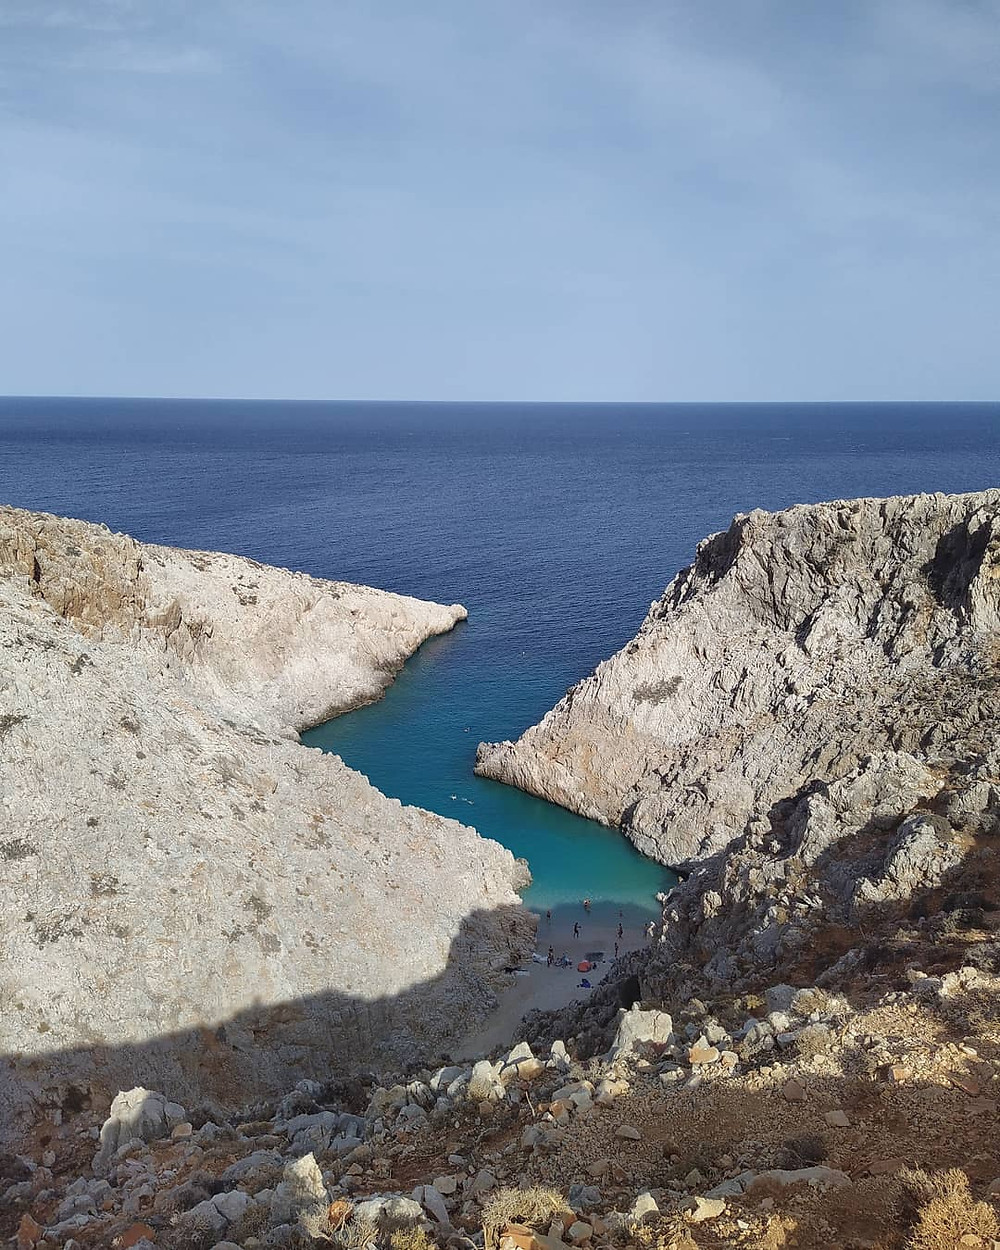 Picture of Seitan Limania beach, Akrotiri, Chania, west Crete, from above. The beach is in a narrow inlet S-type formed, with limestone rocky landscape and turquoise water. Photo taken on afternoon of October 2020, from the West viewing to the beach